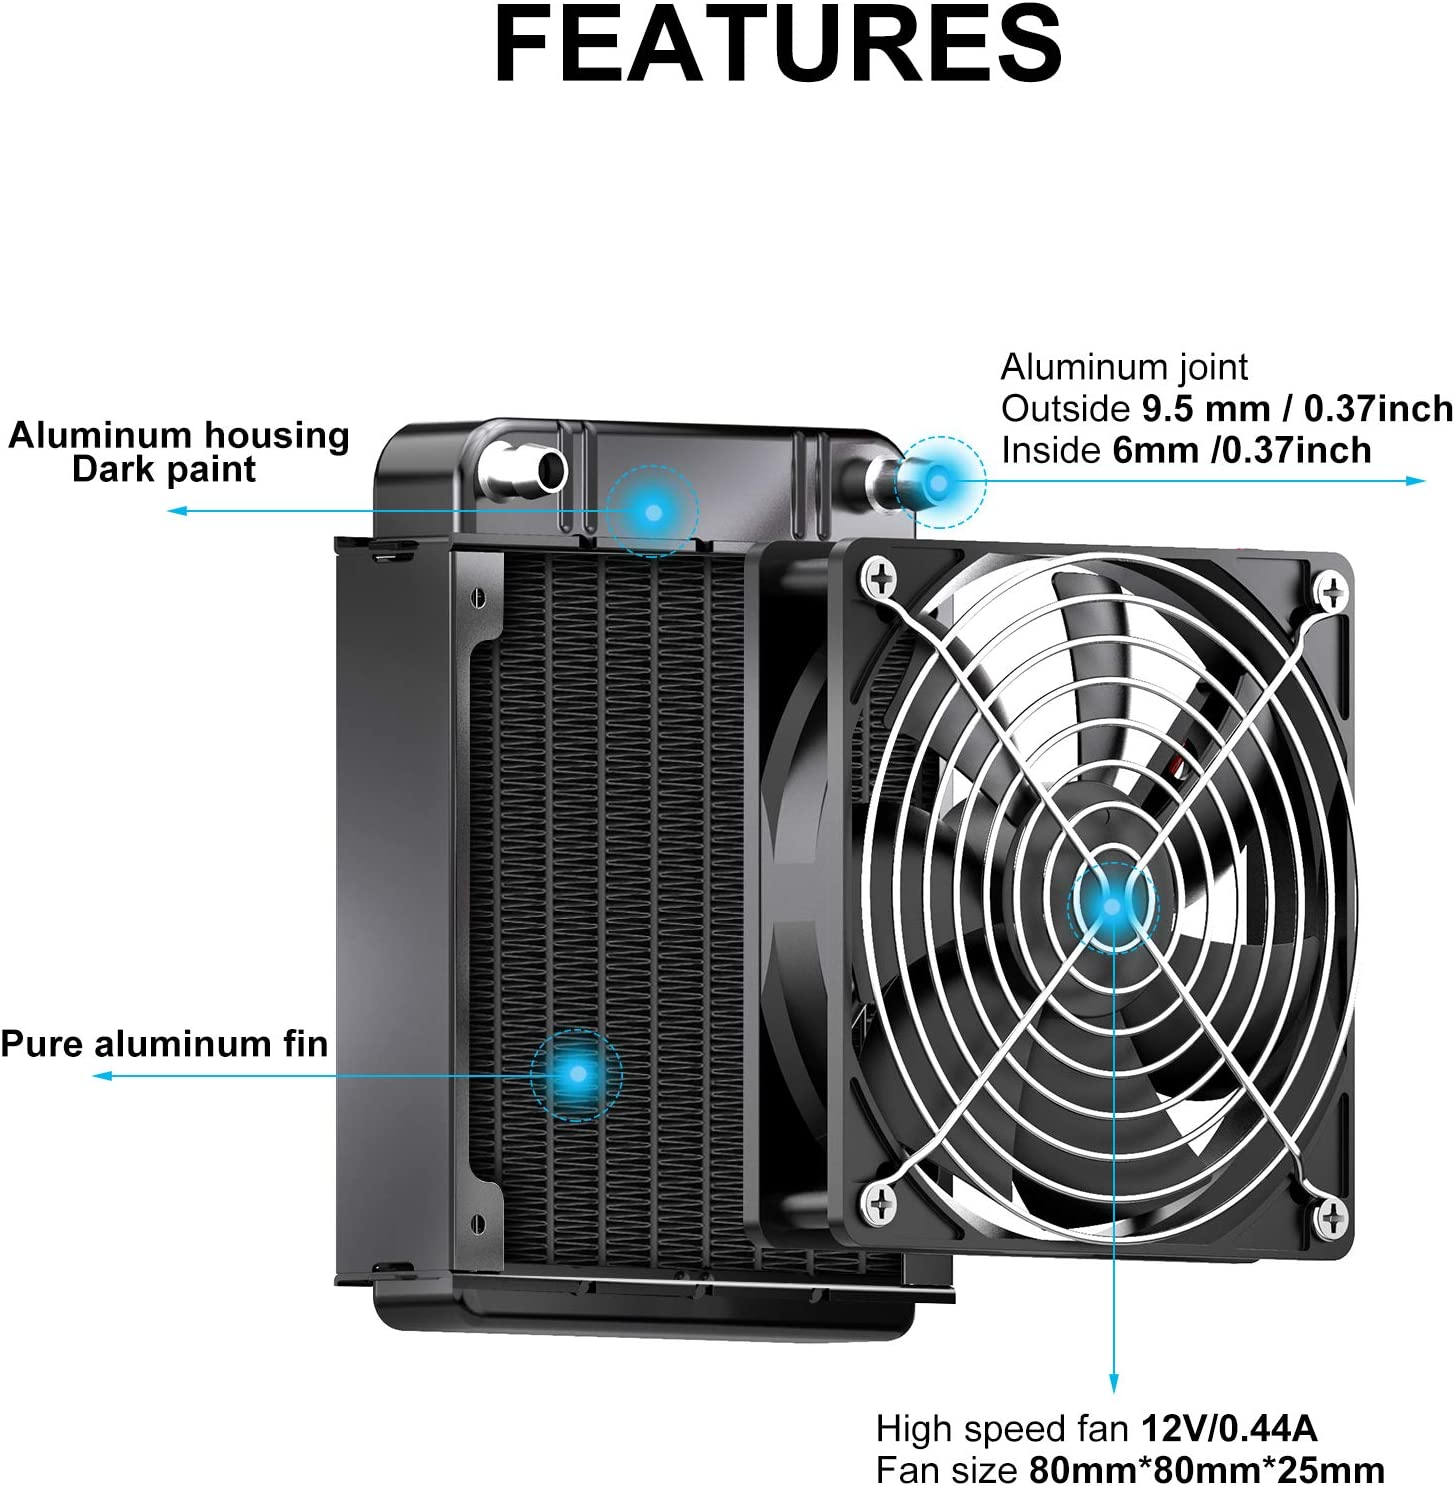 8 Pipe Aluminum Heat Exchanger Radiator for PC CPU Computer Water Cool System 80mm Clyxgs Water Cooling Radiator